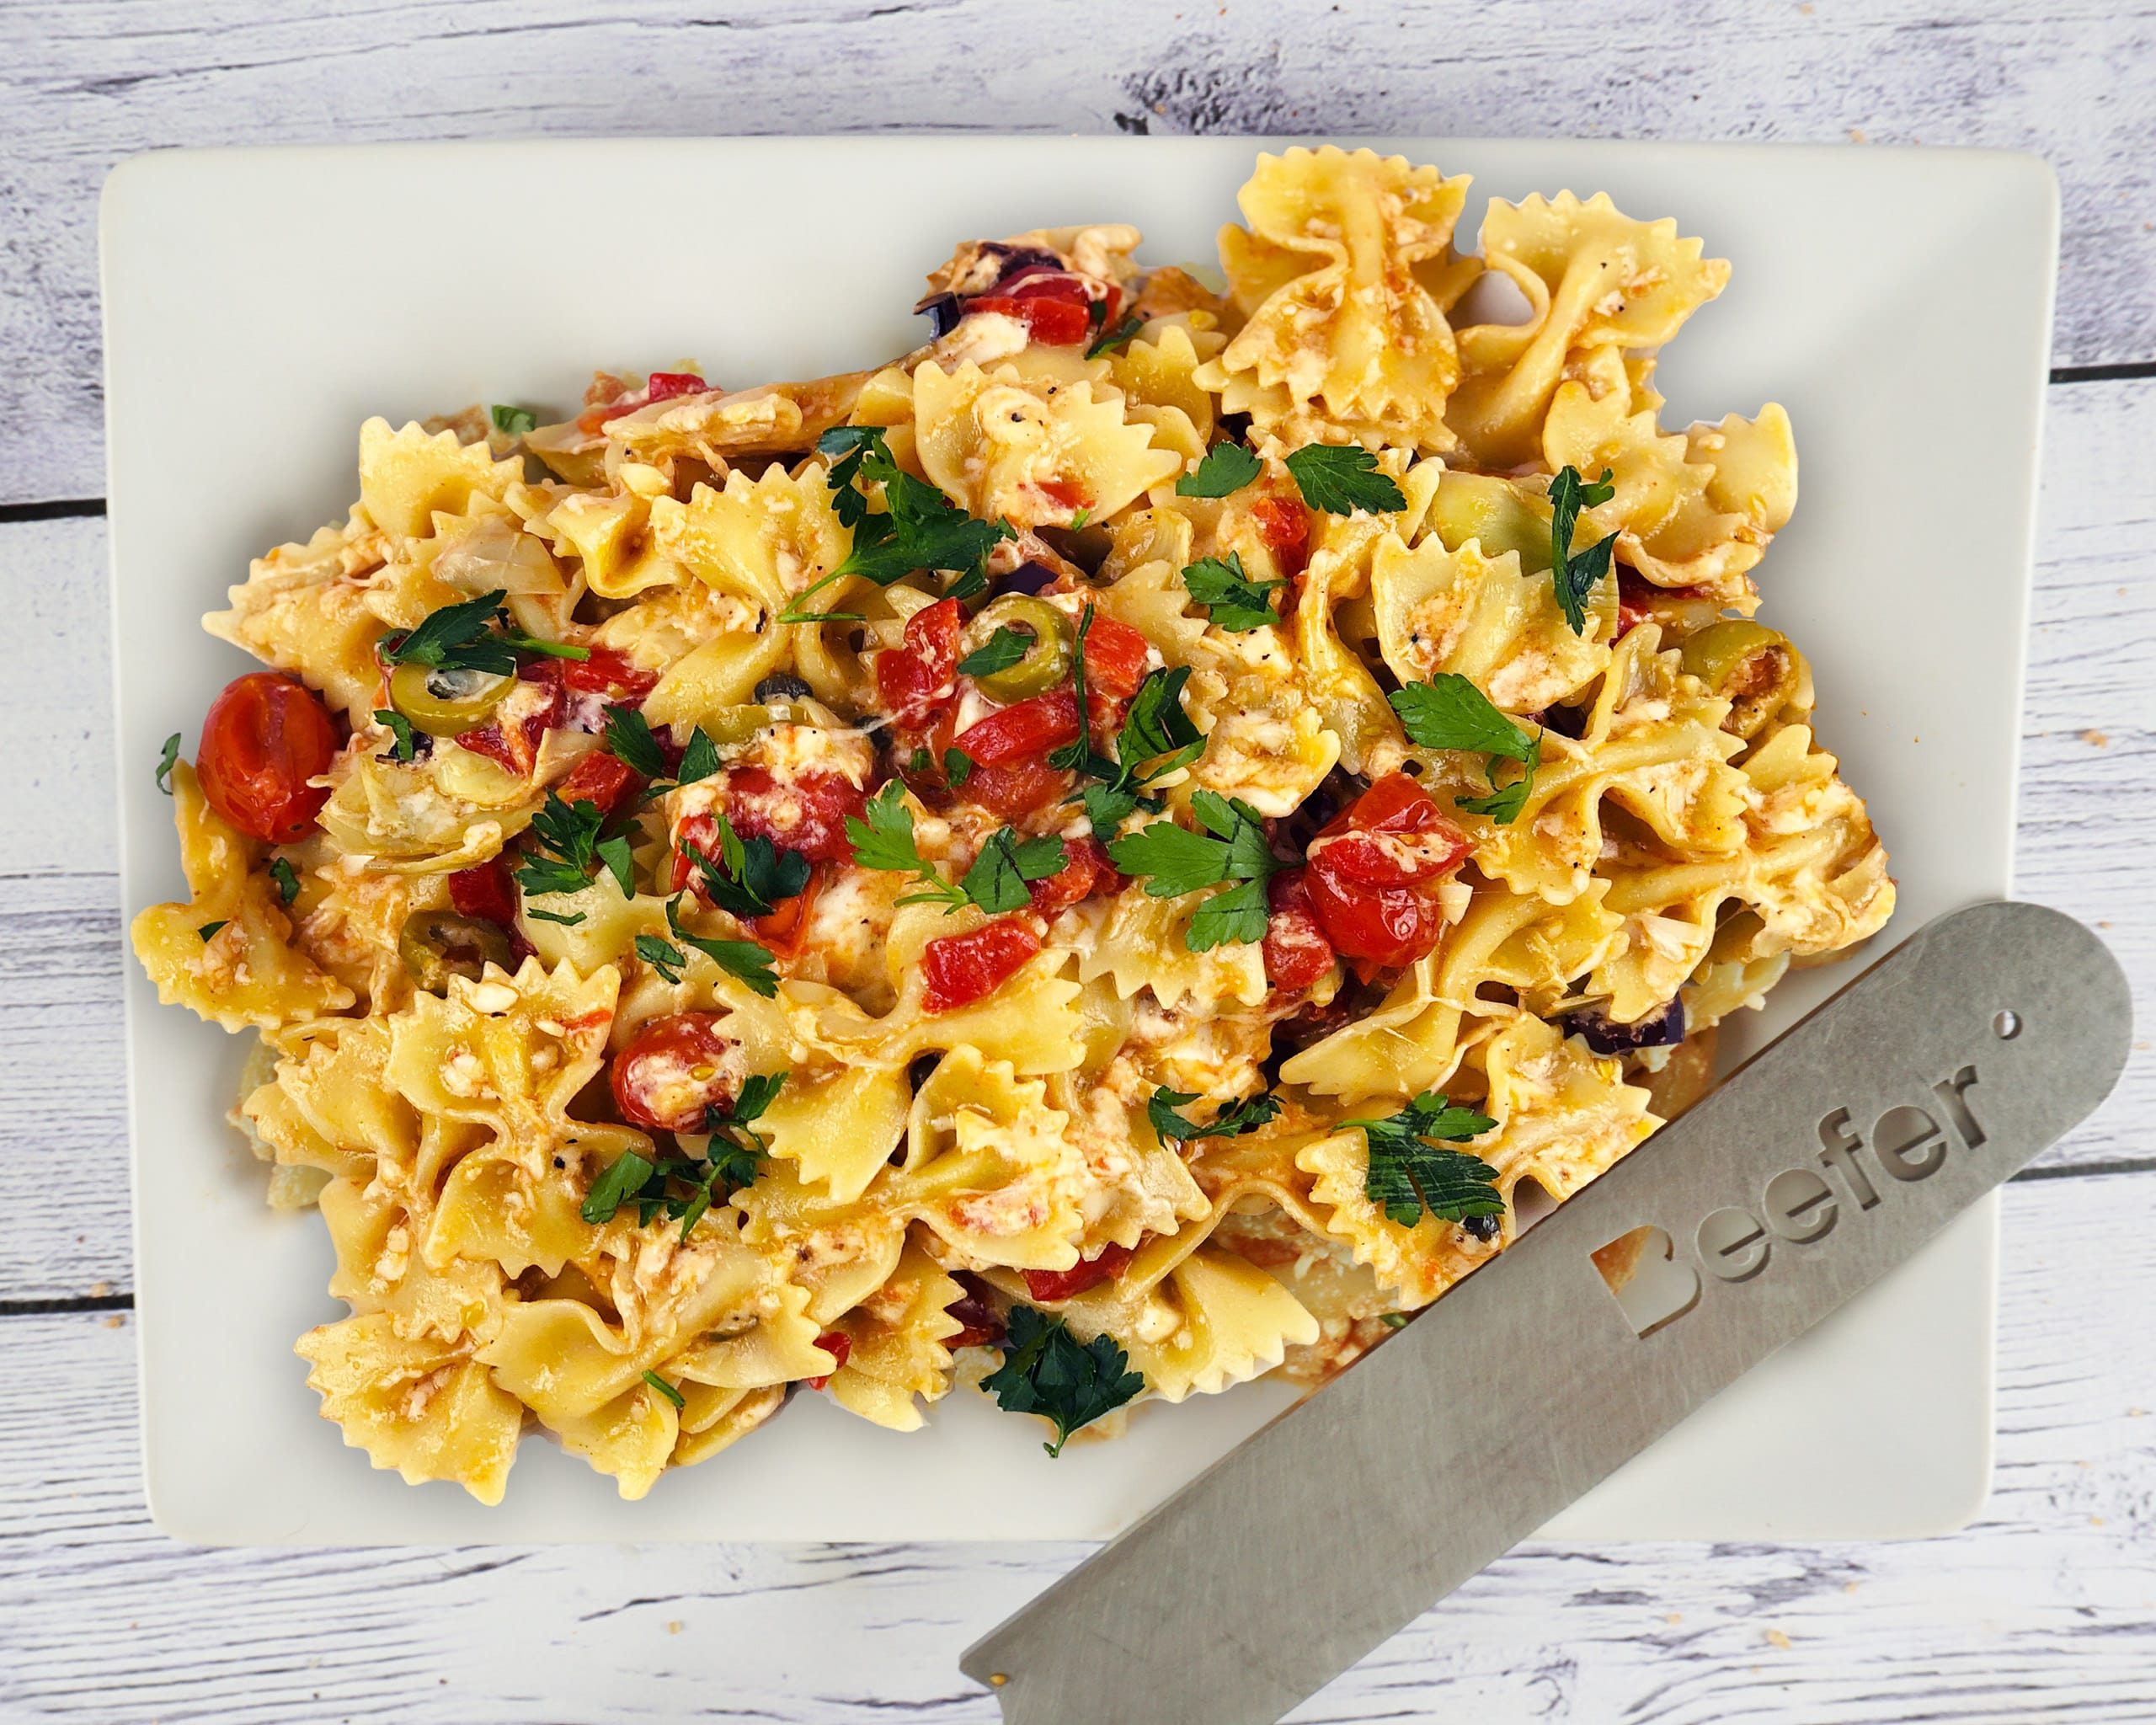 Greek Feta Pasta - made with a Beefer